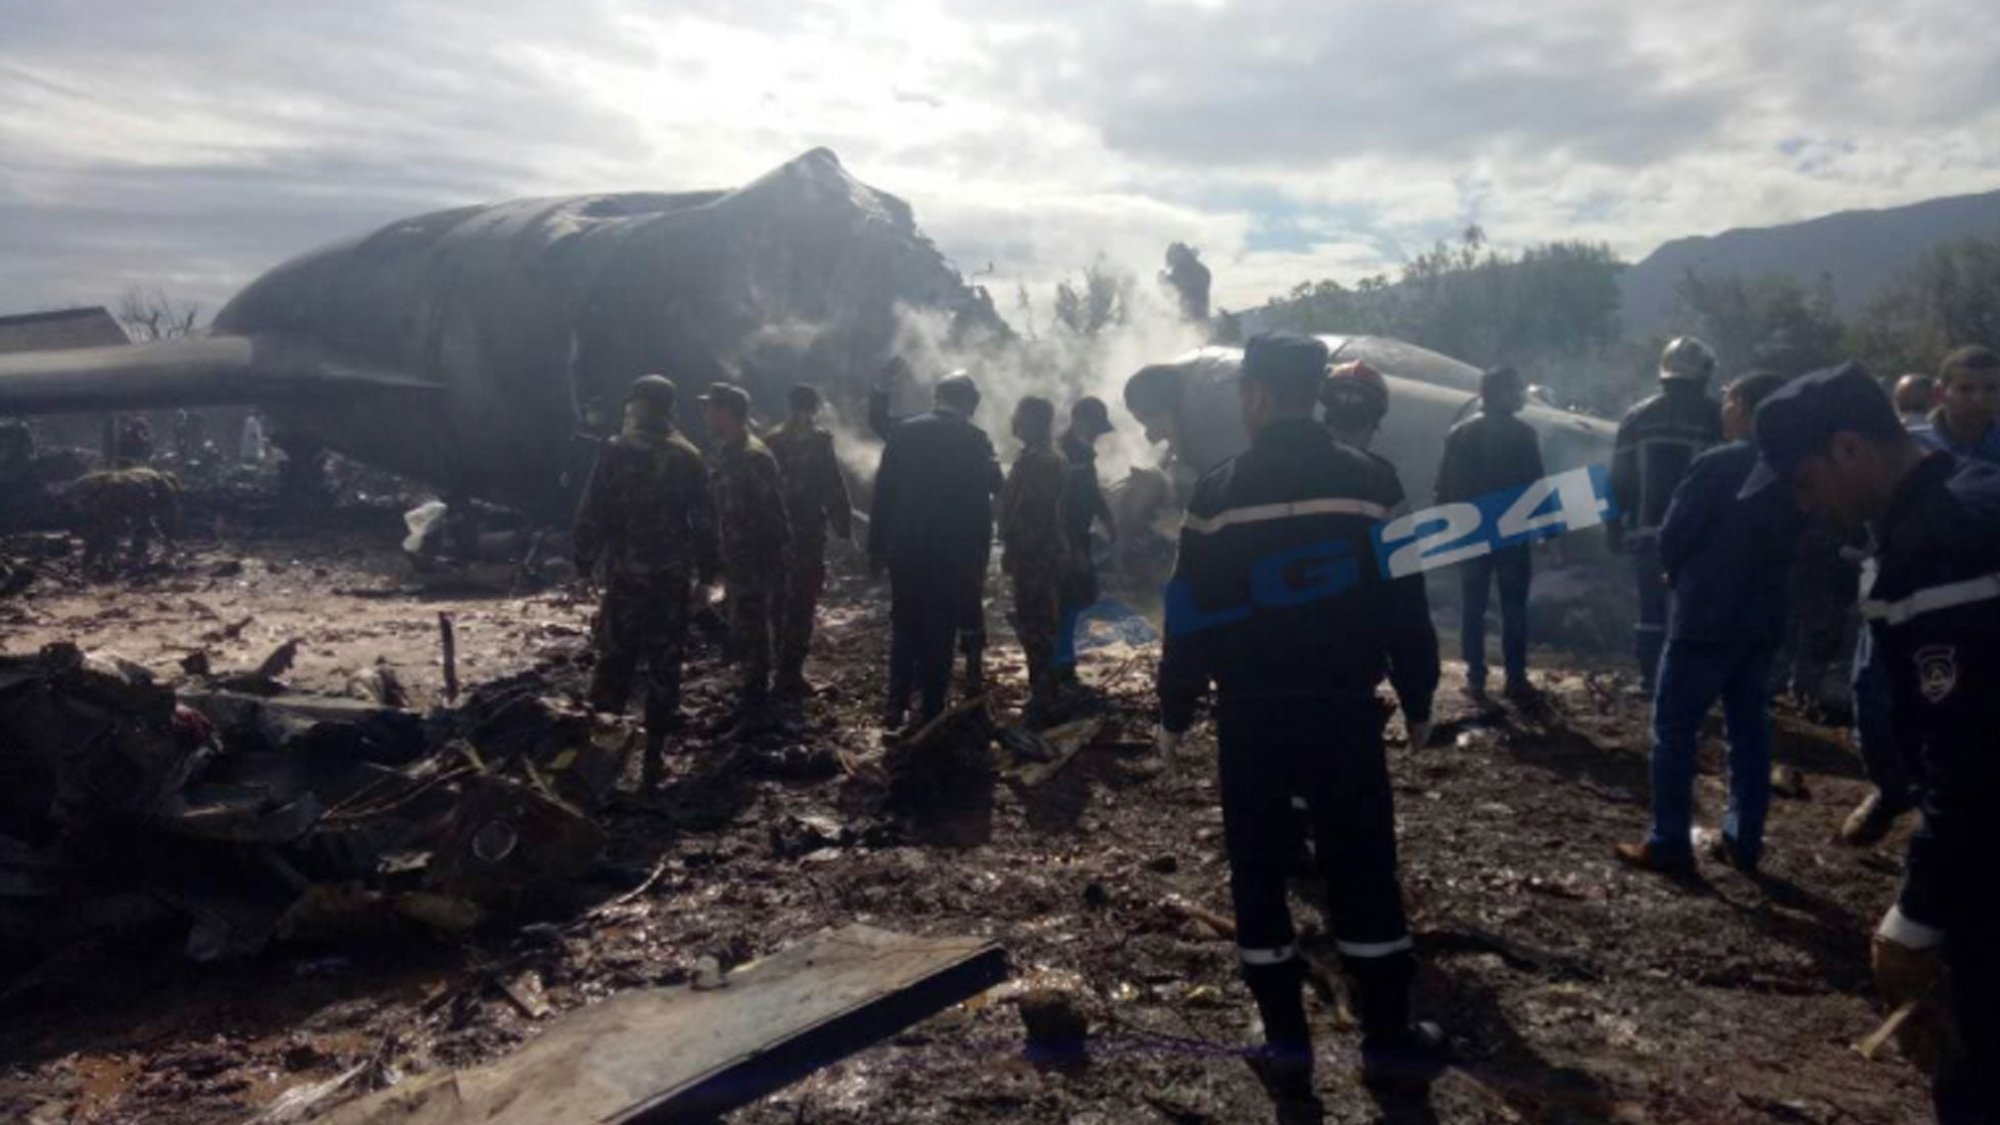 At least 257 people have been killed in a military plane crash near Algeria's capital, Algiers, state media reports. (Credit: AP via CNN Wire)